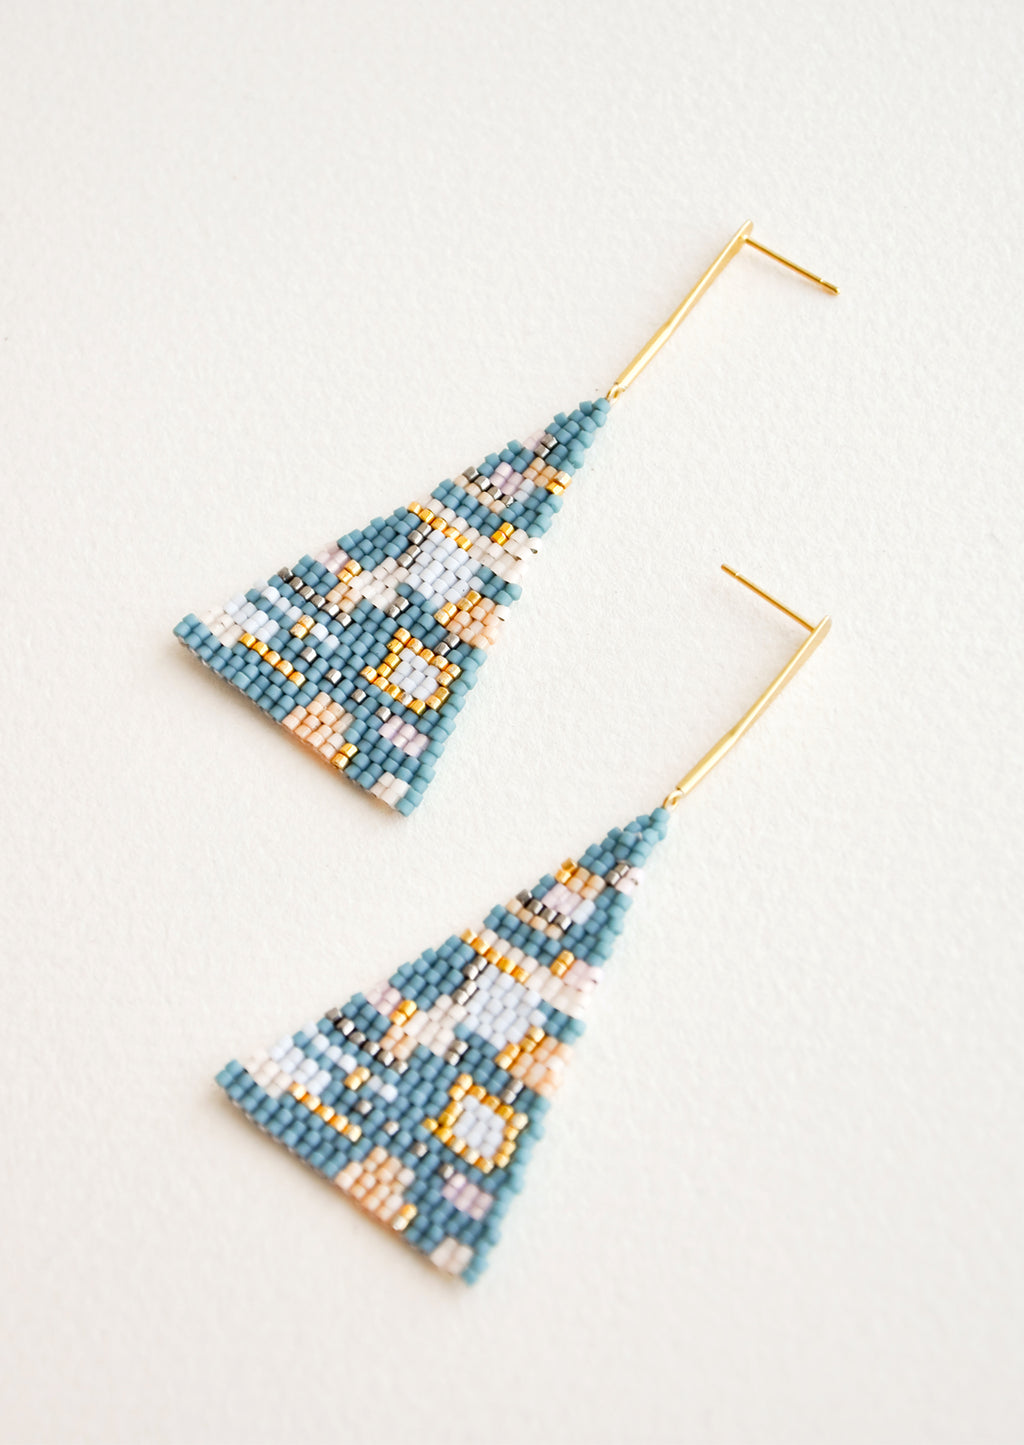 Sea Multi: Treasure Map Earrings in Sea Multi - LEIF